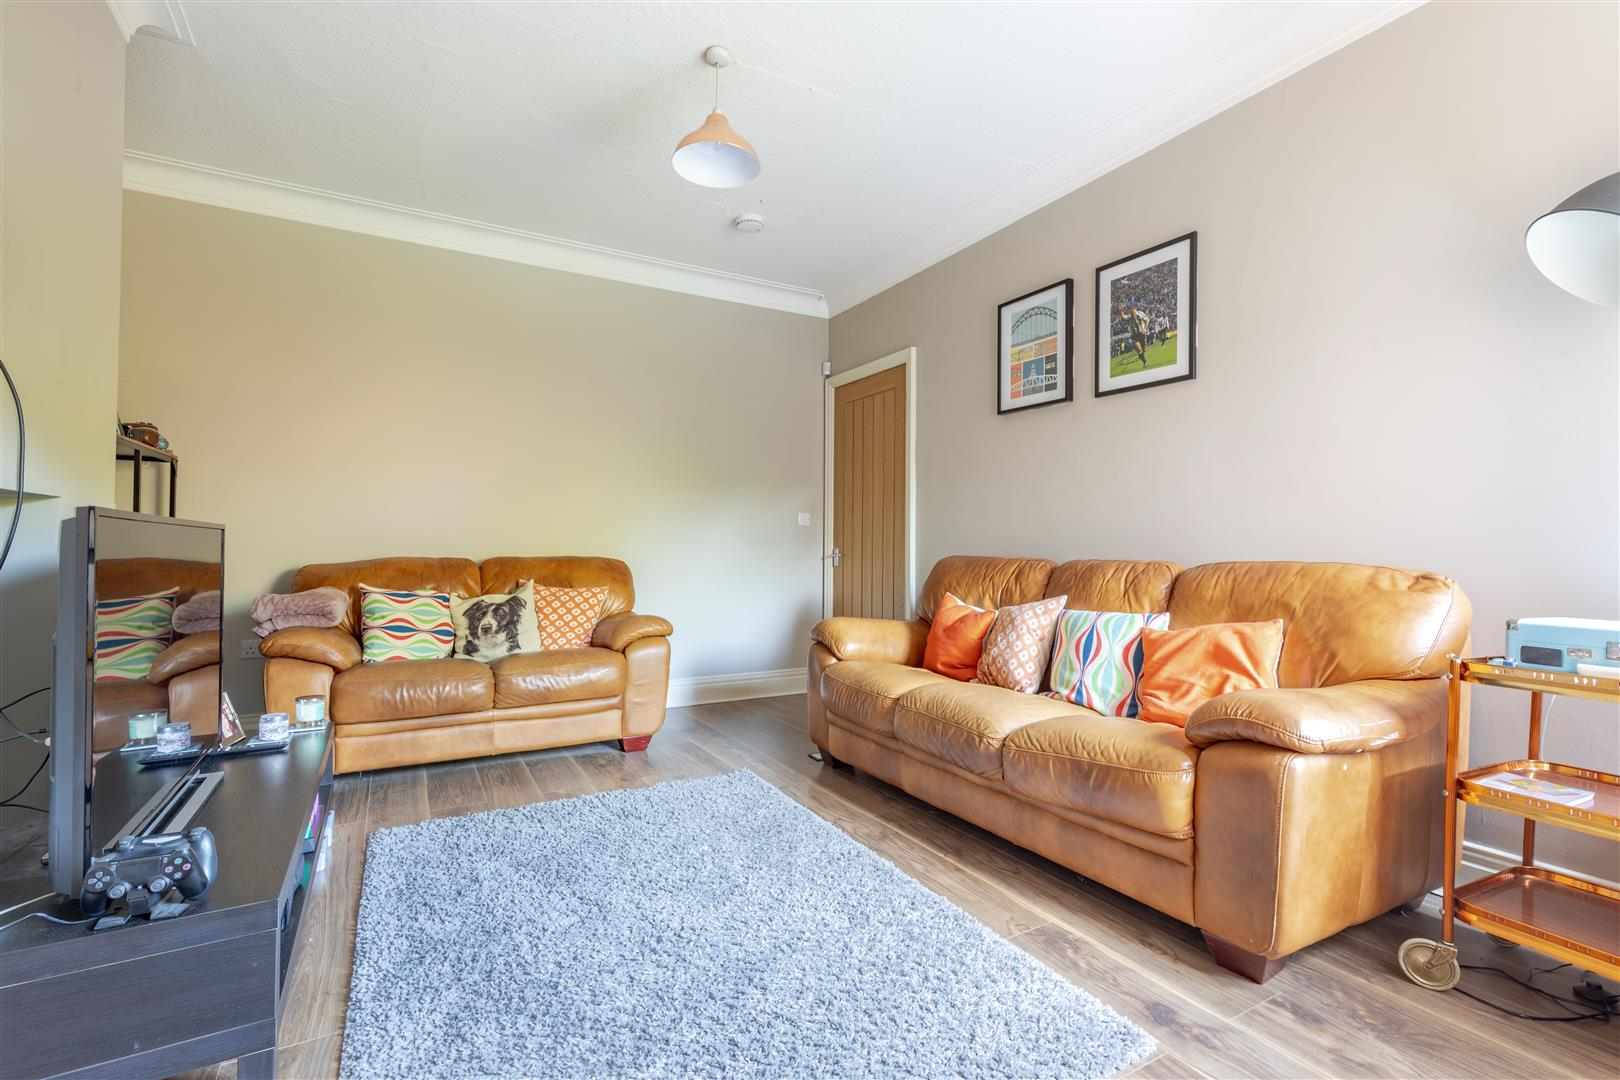 2 bed flat to rent in Newcastle upon Tyne, NE6 5TS 5